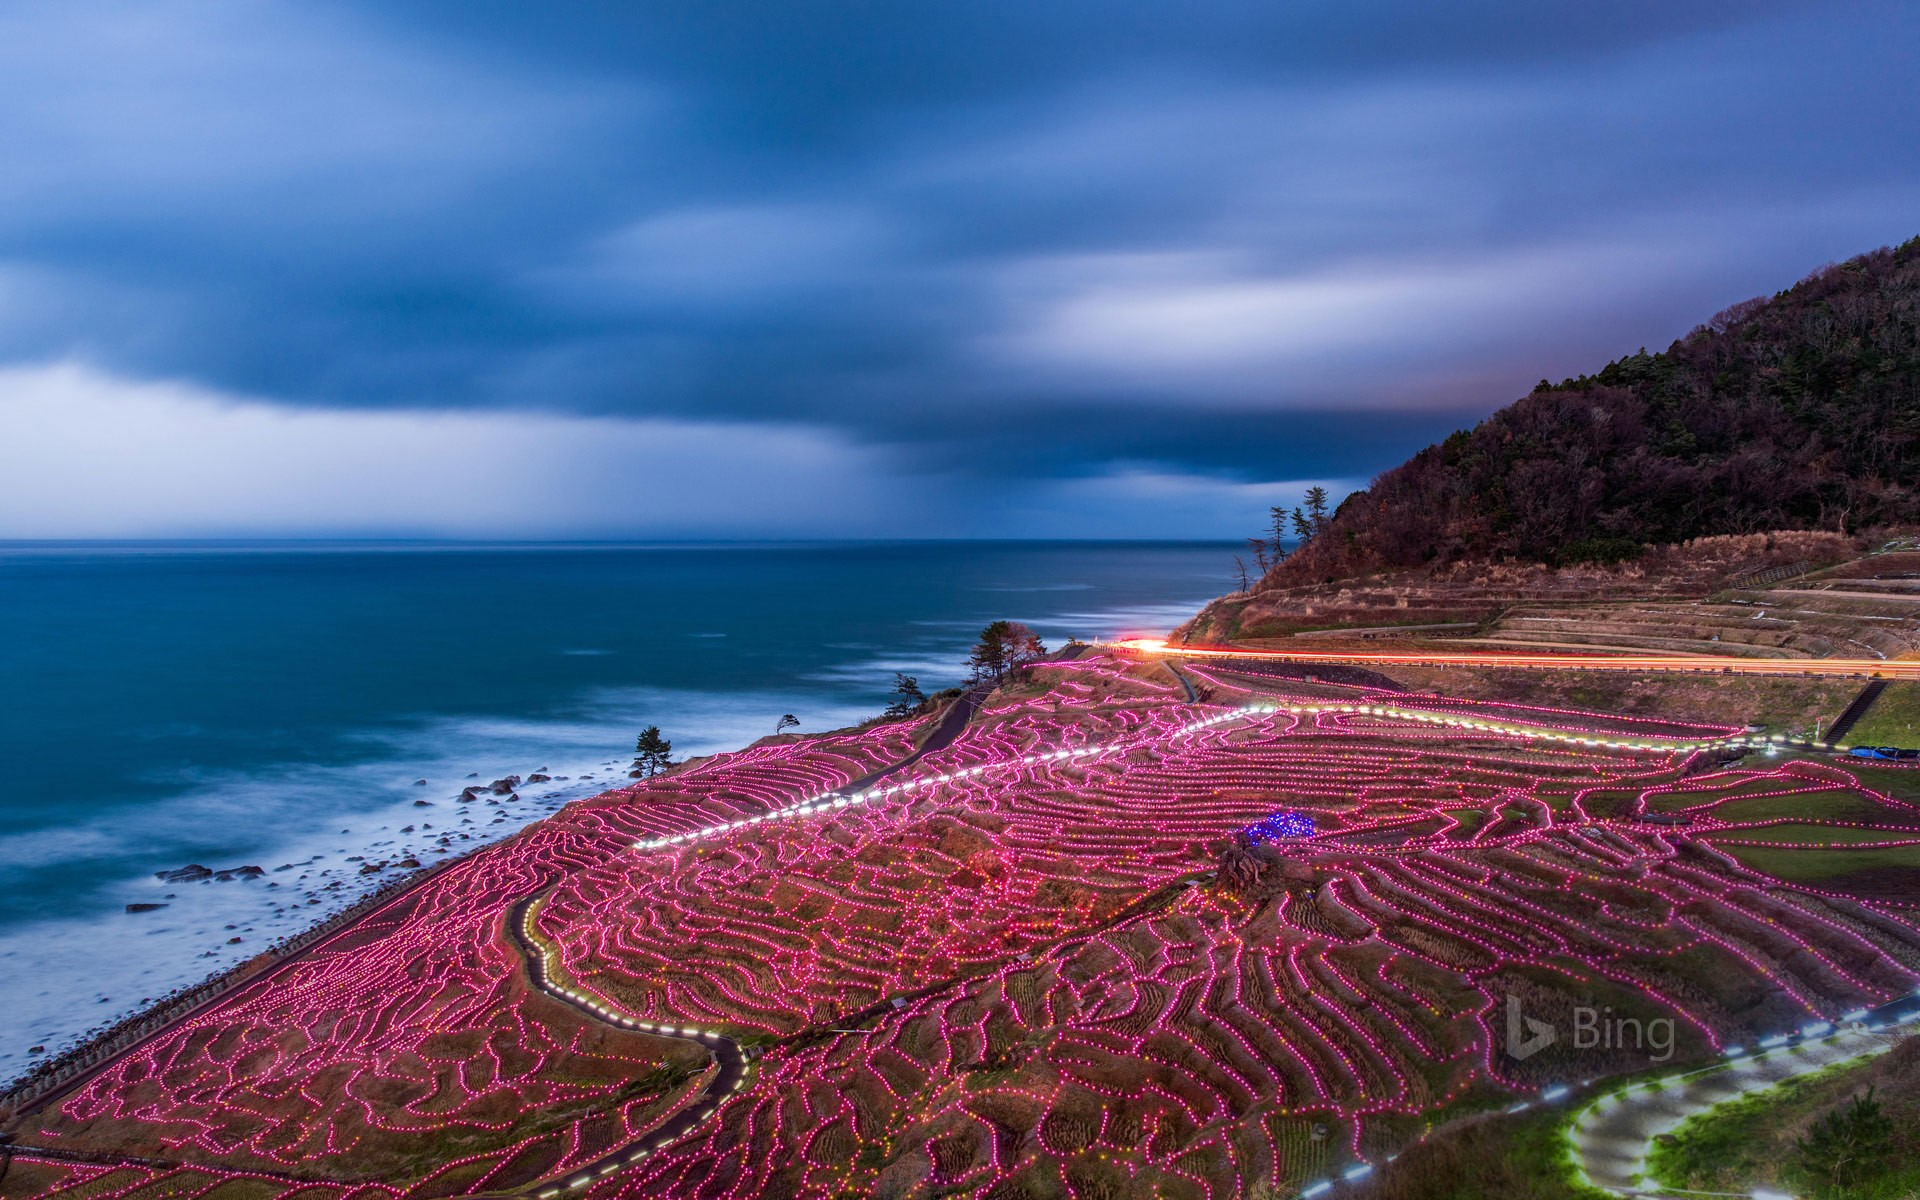 Rice terraces strung with lights, Wajima, Japan